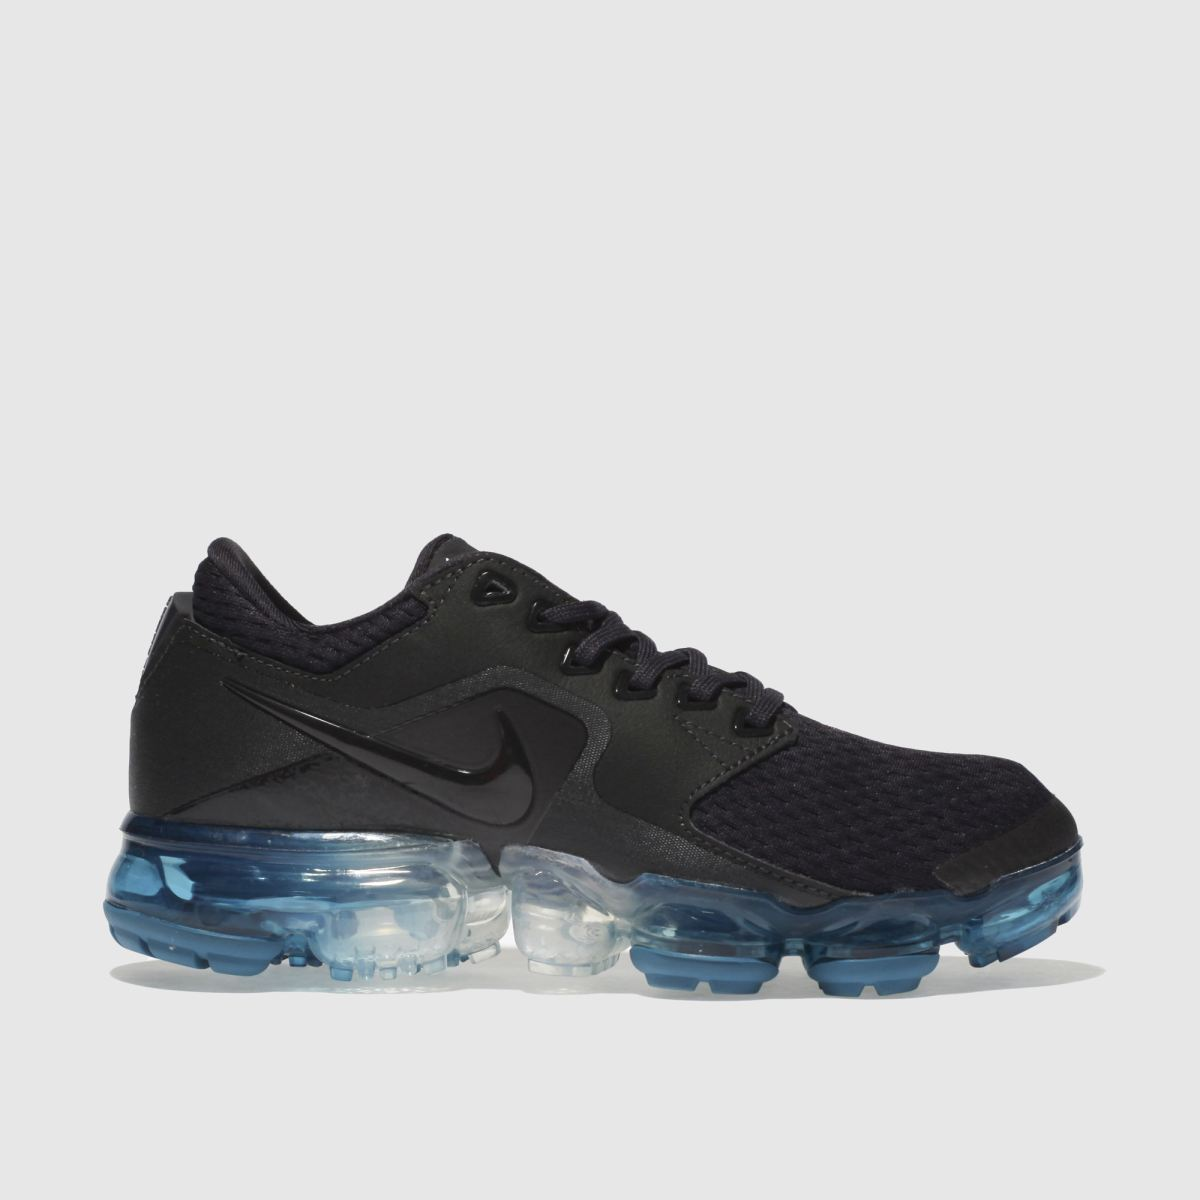 Nike Black And Blue Air Vapormax Boys Youth Youth